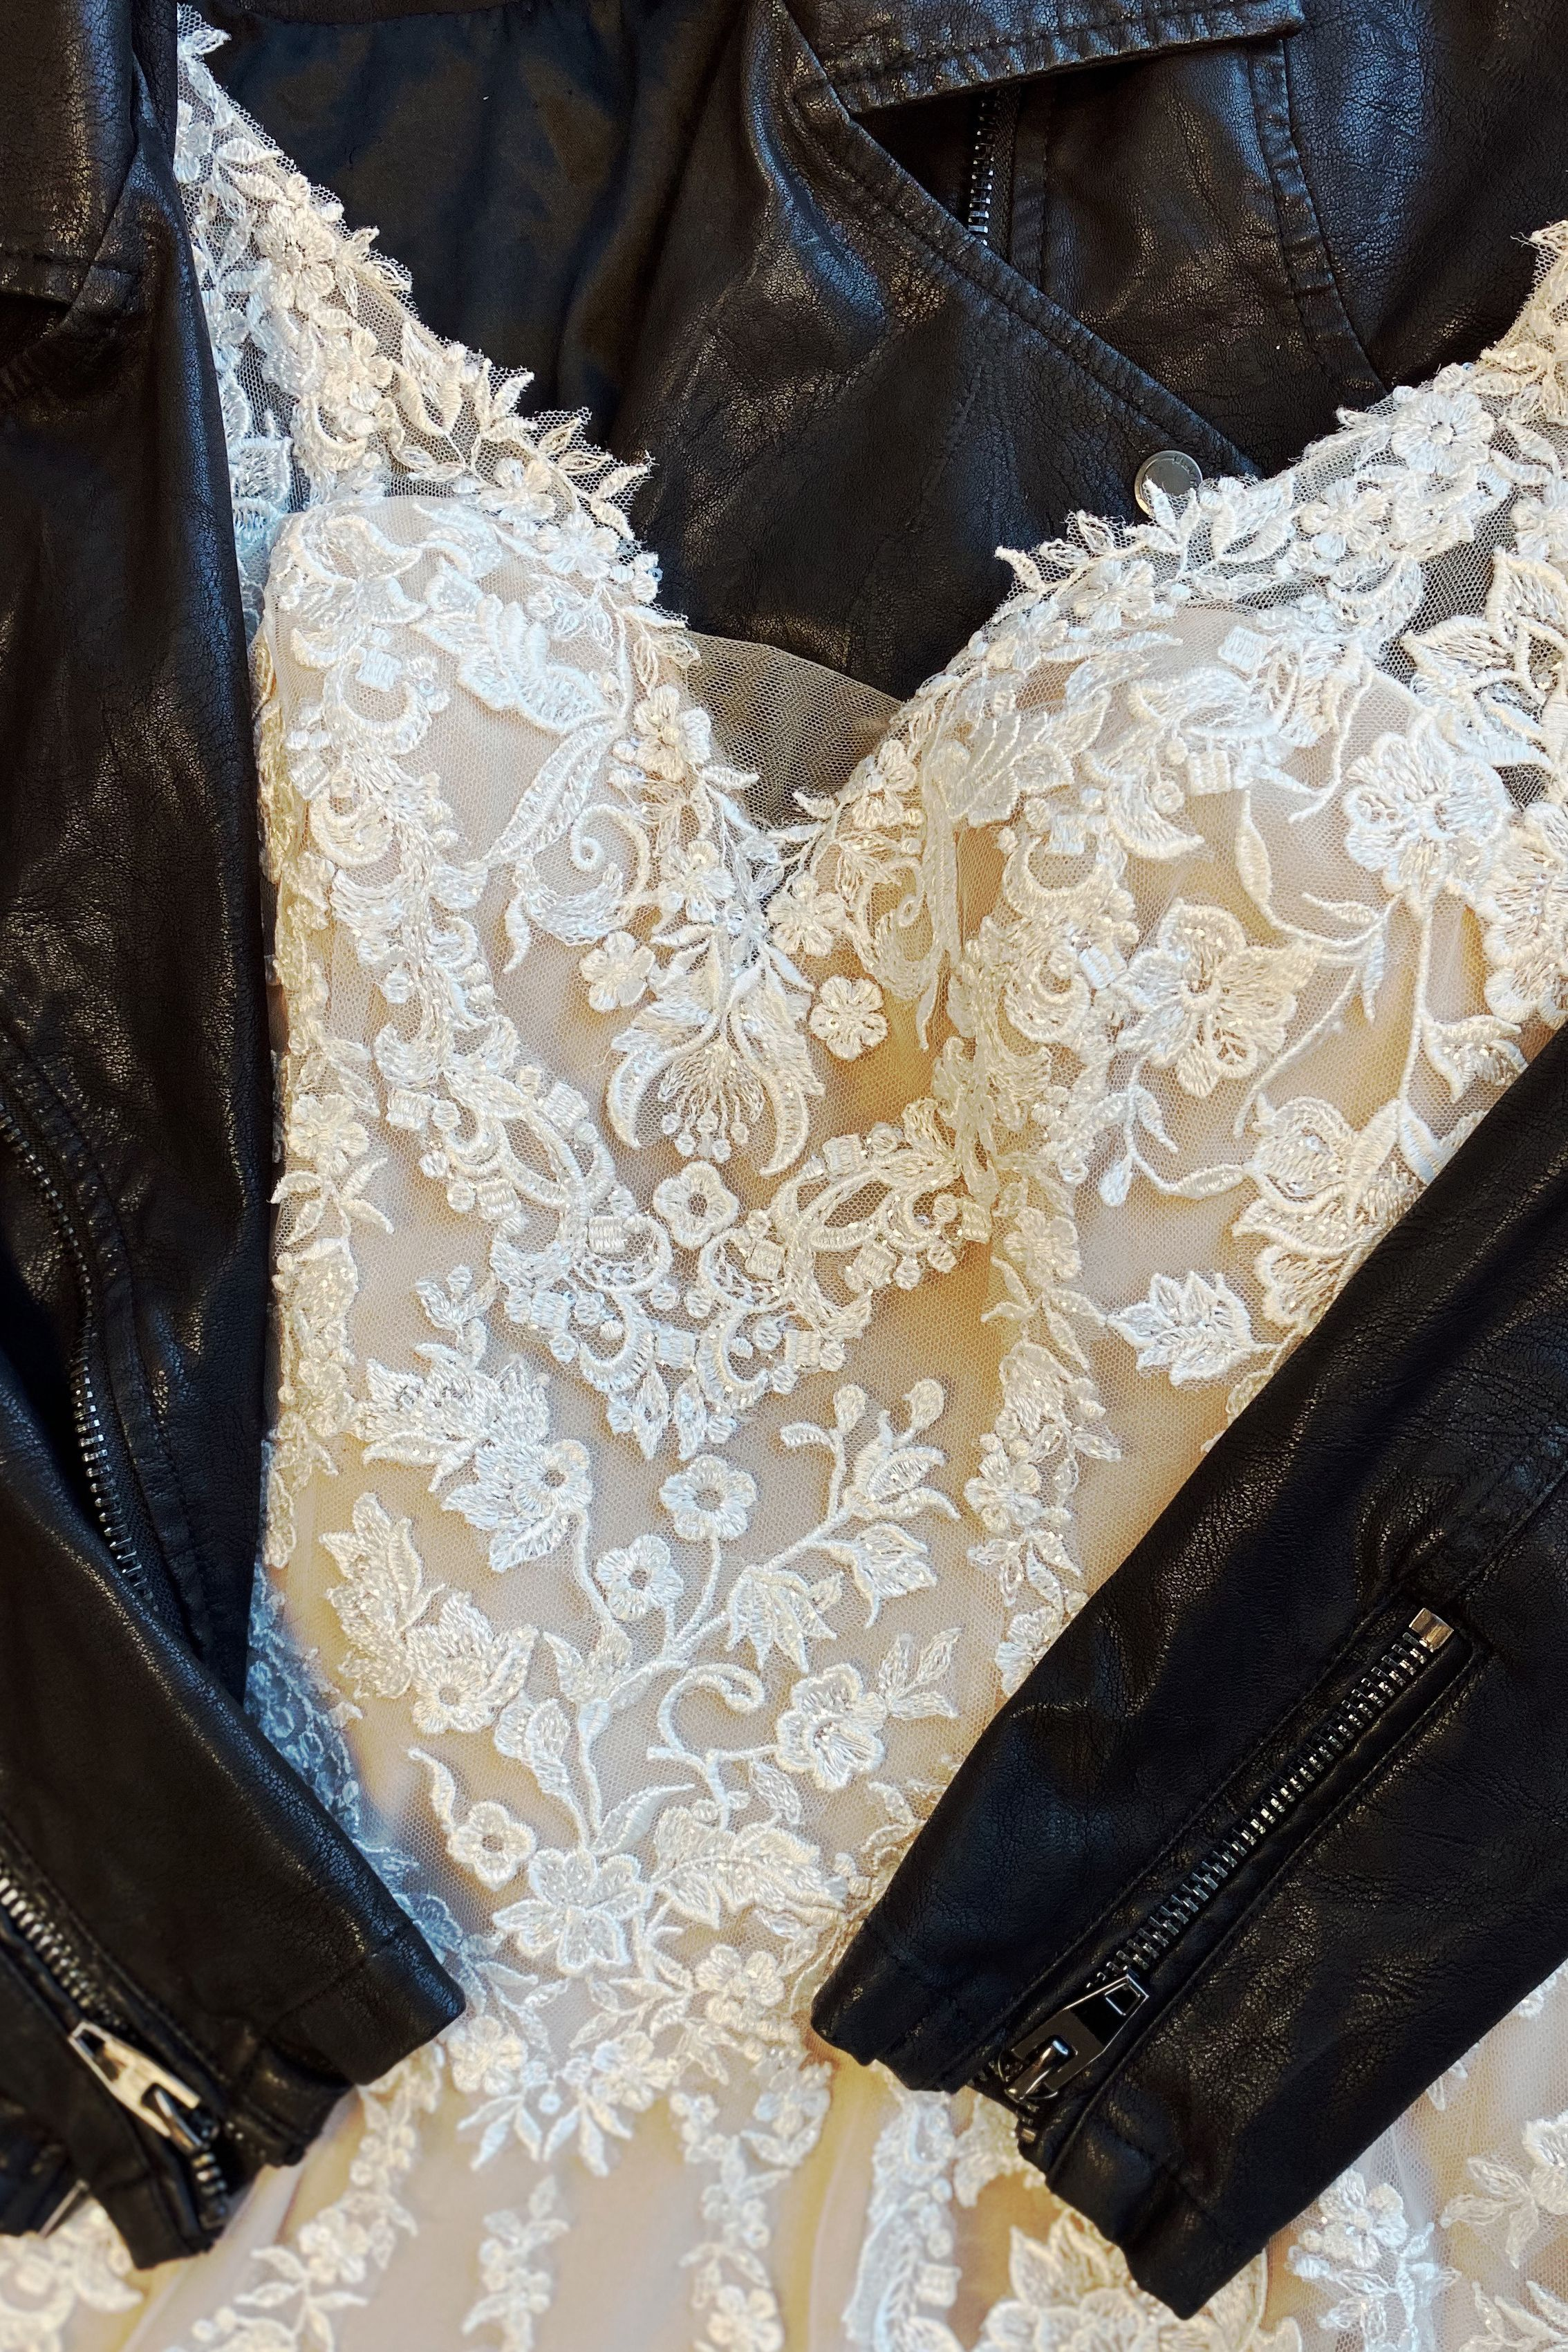 Affordable Lace Wedding Dress With Leather Jacket From Beloved By Casablanca Bridal Affordable Wedding Dresses Casablanca Bridal Gowns Wedding Dresses Lace [ 3402 x 2268 Pixel ]